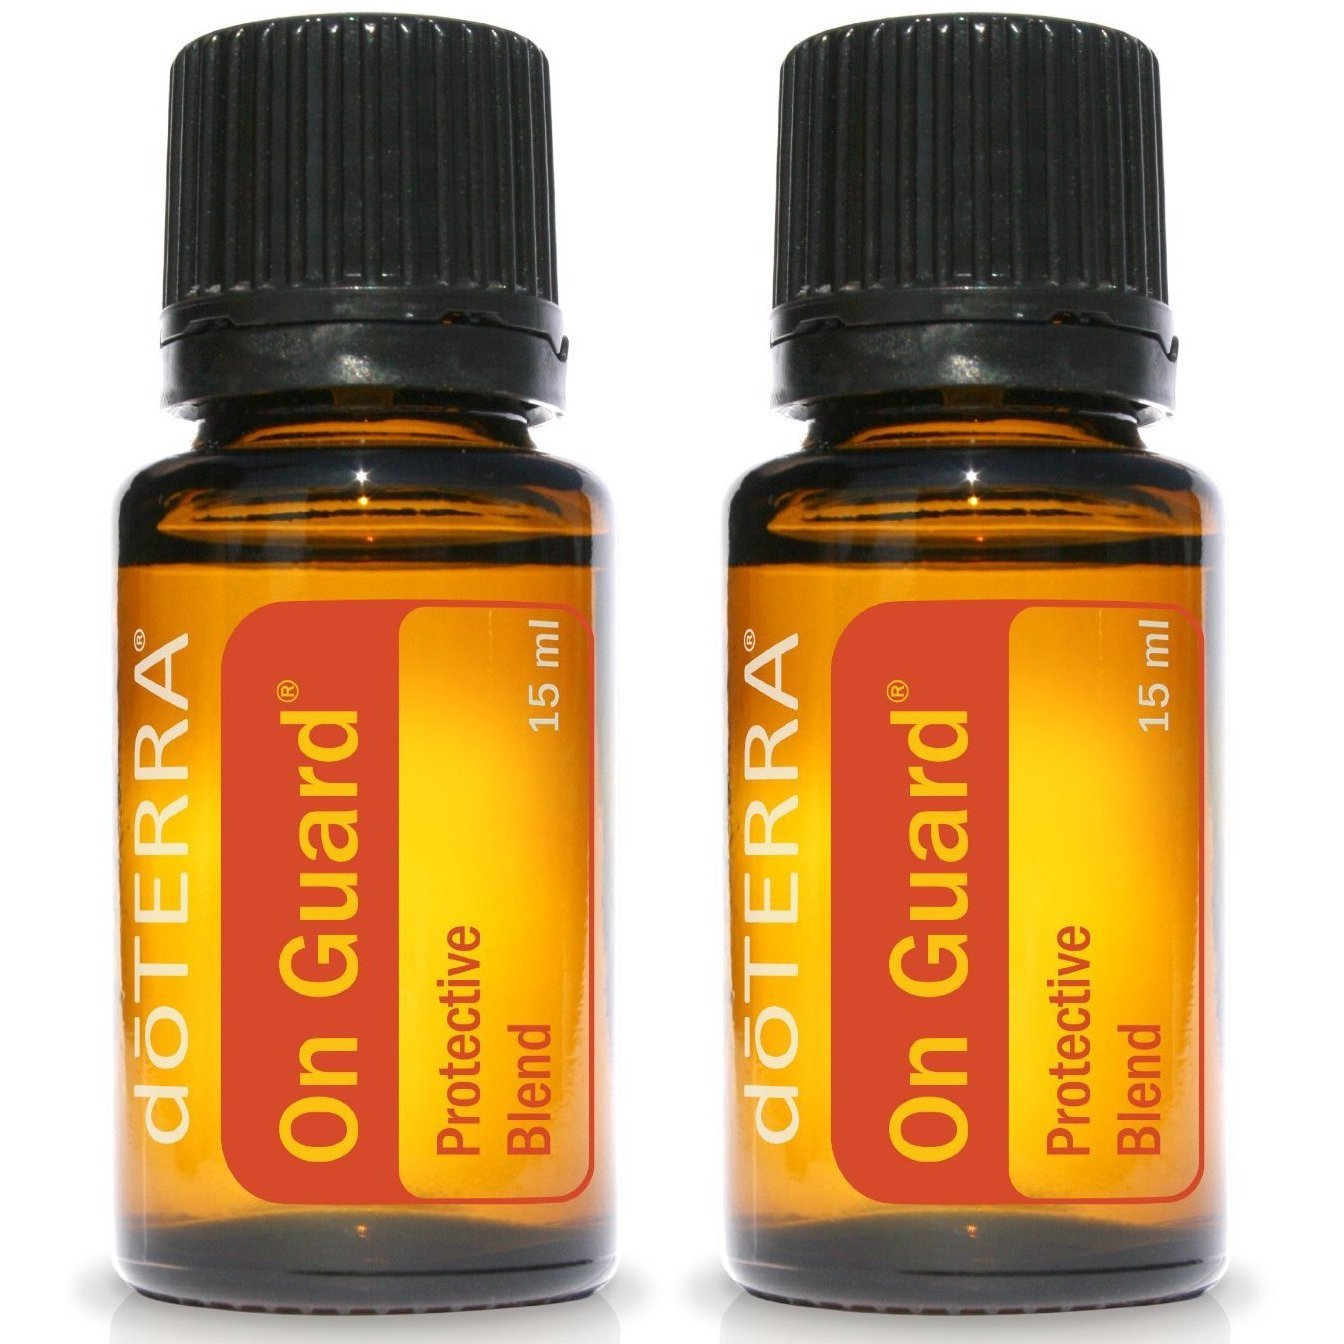 doTERRA On Guard Essential Oil Protective Blend 15 ml (2 pack)